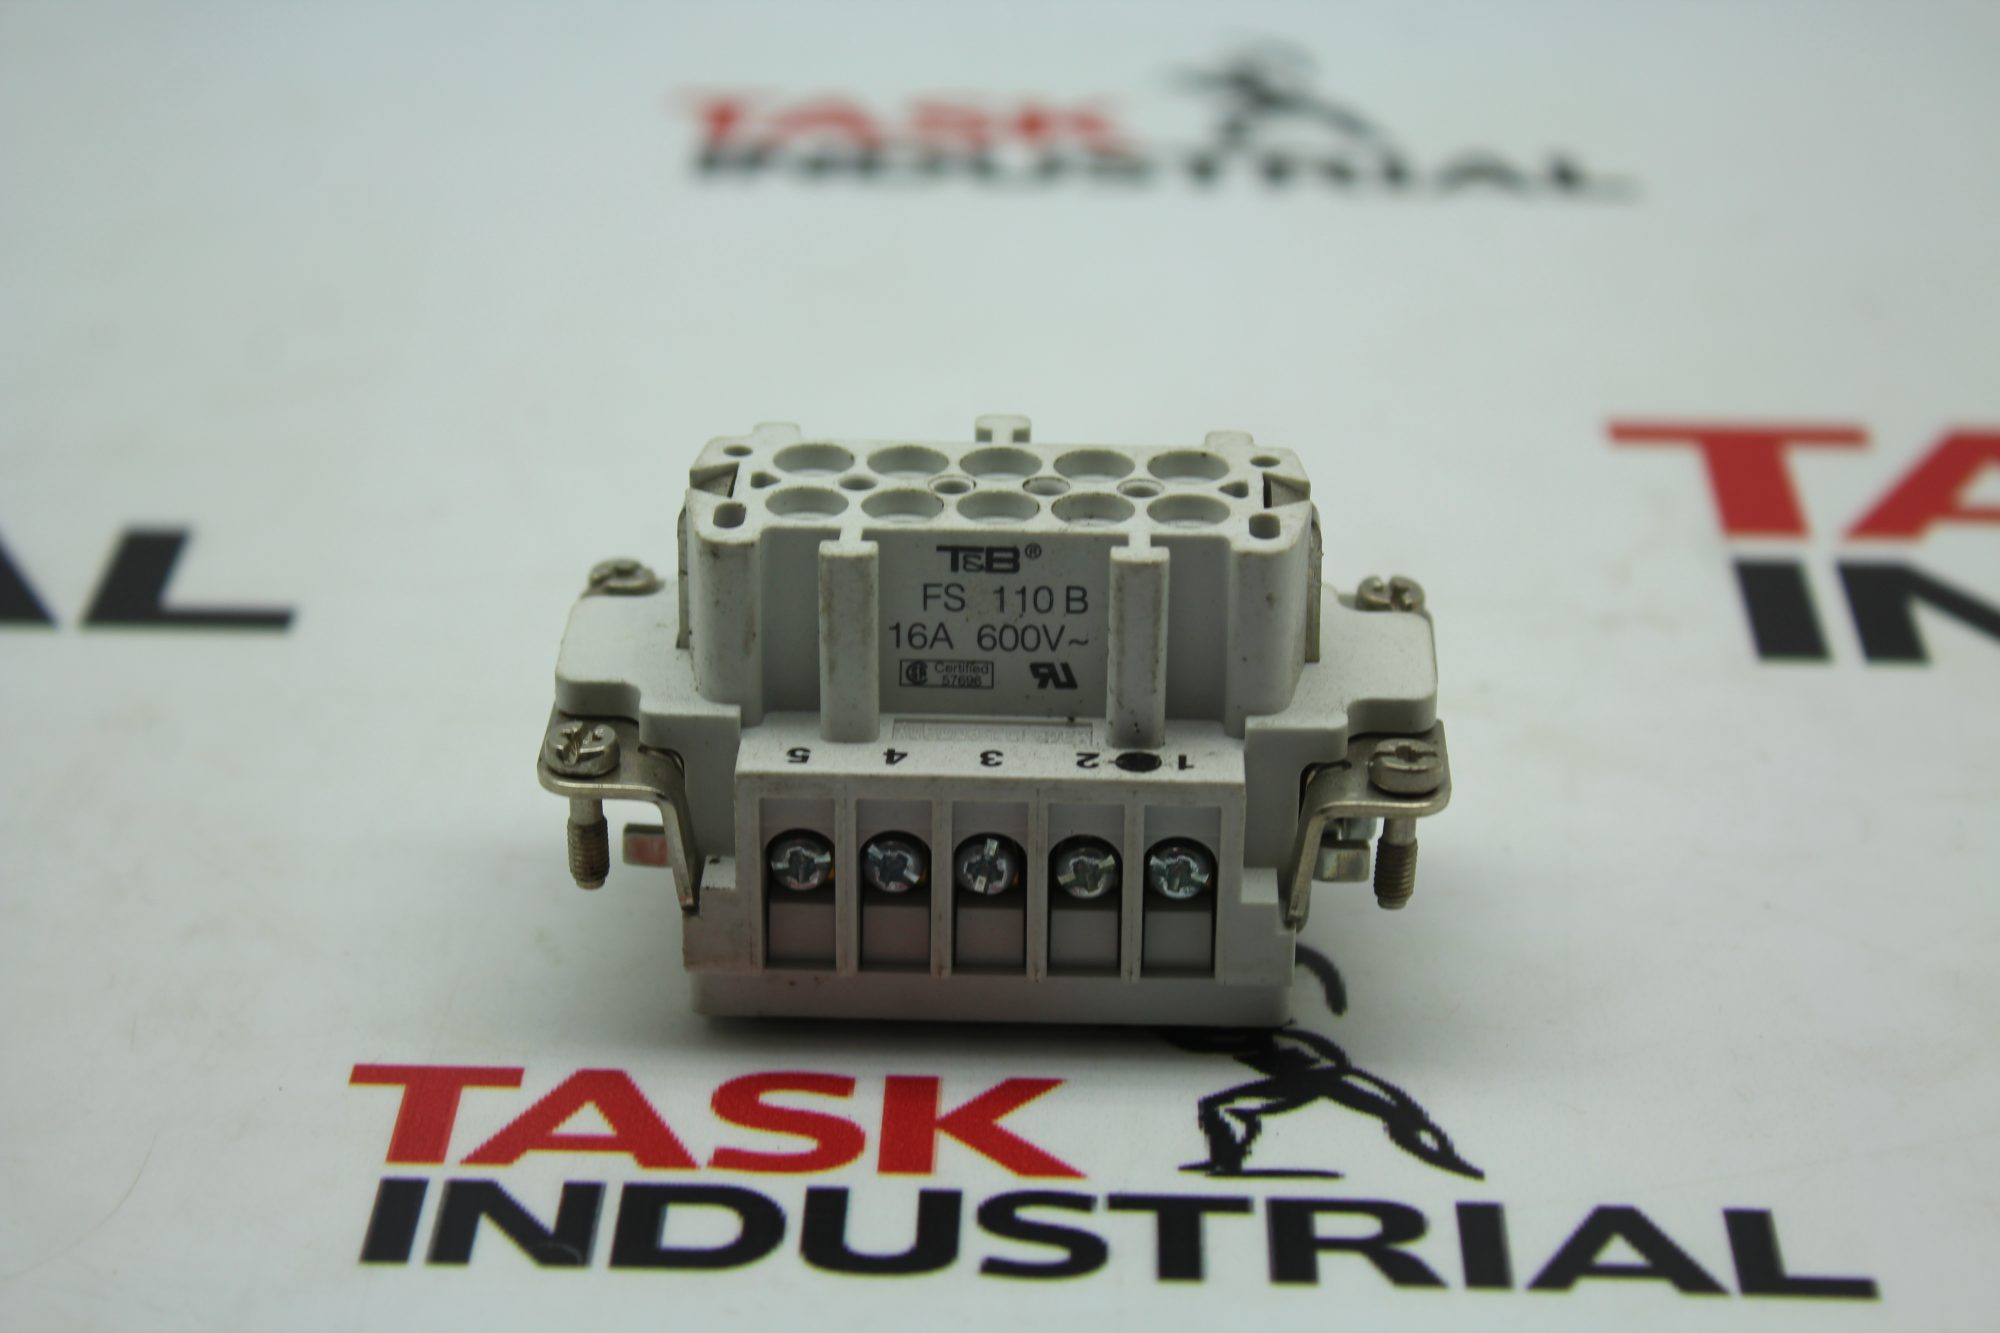 T&B FS 110B 16A 600V Connectors